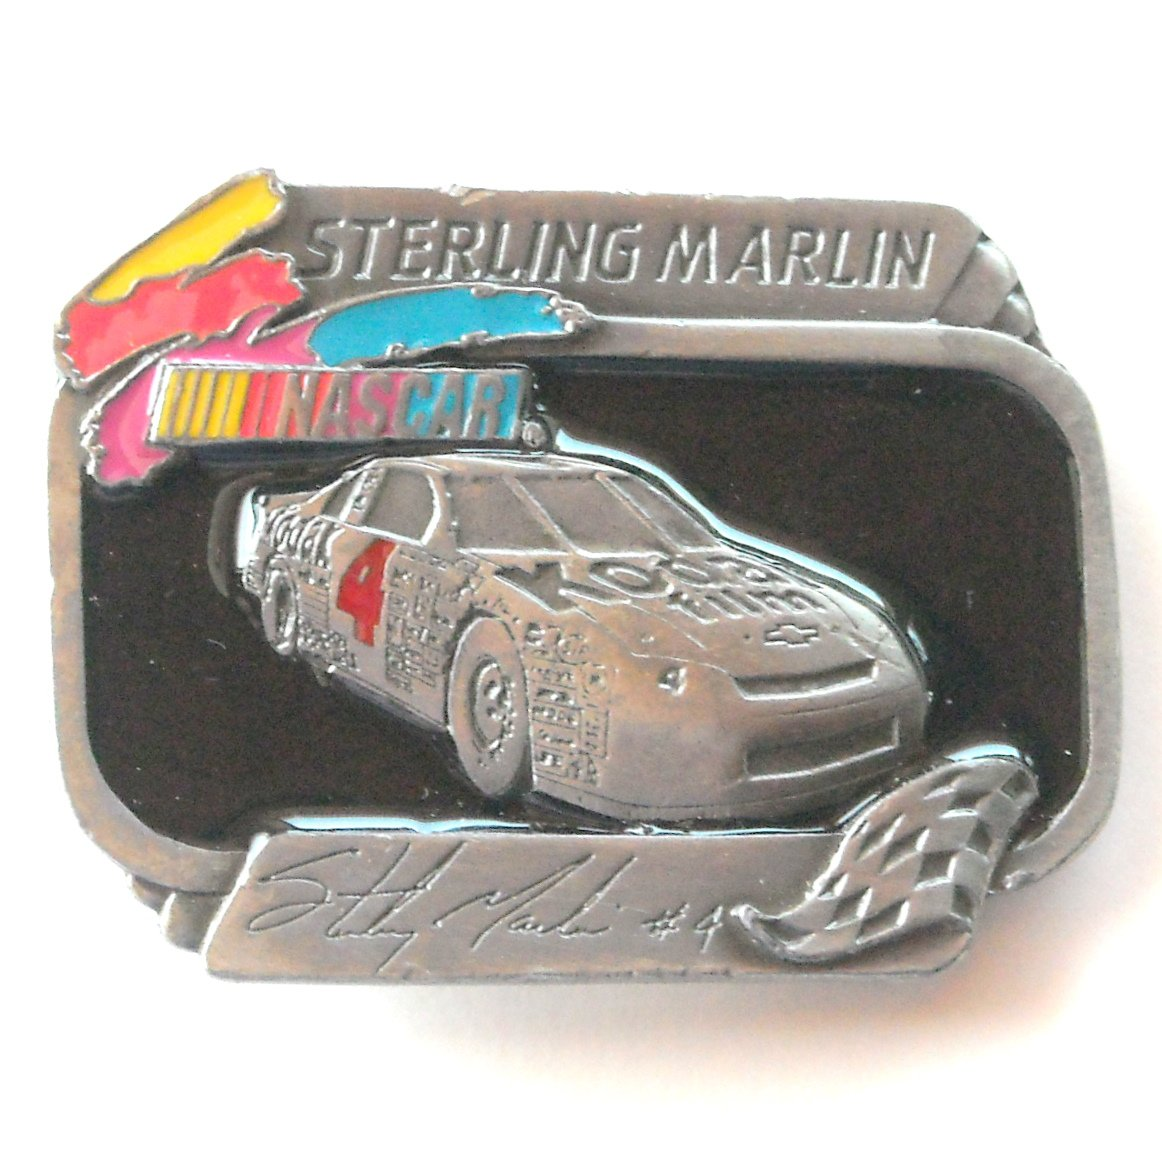 Sterling Marlin Nascar Kodak 4 Limited Edition 962 American Legends Belt Buckle